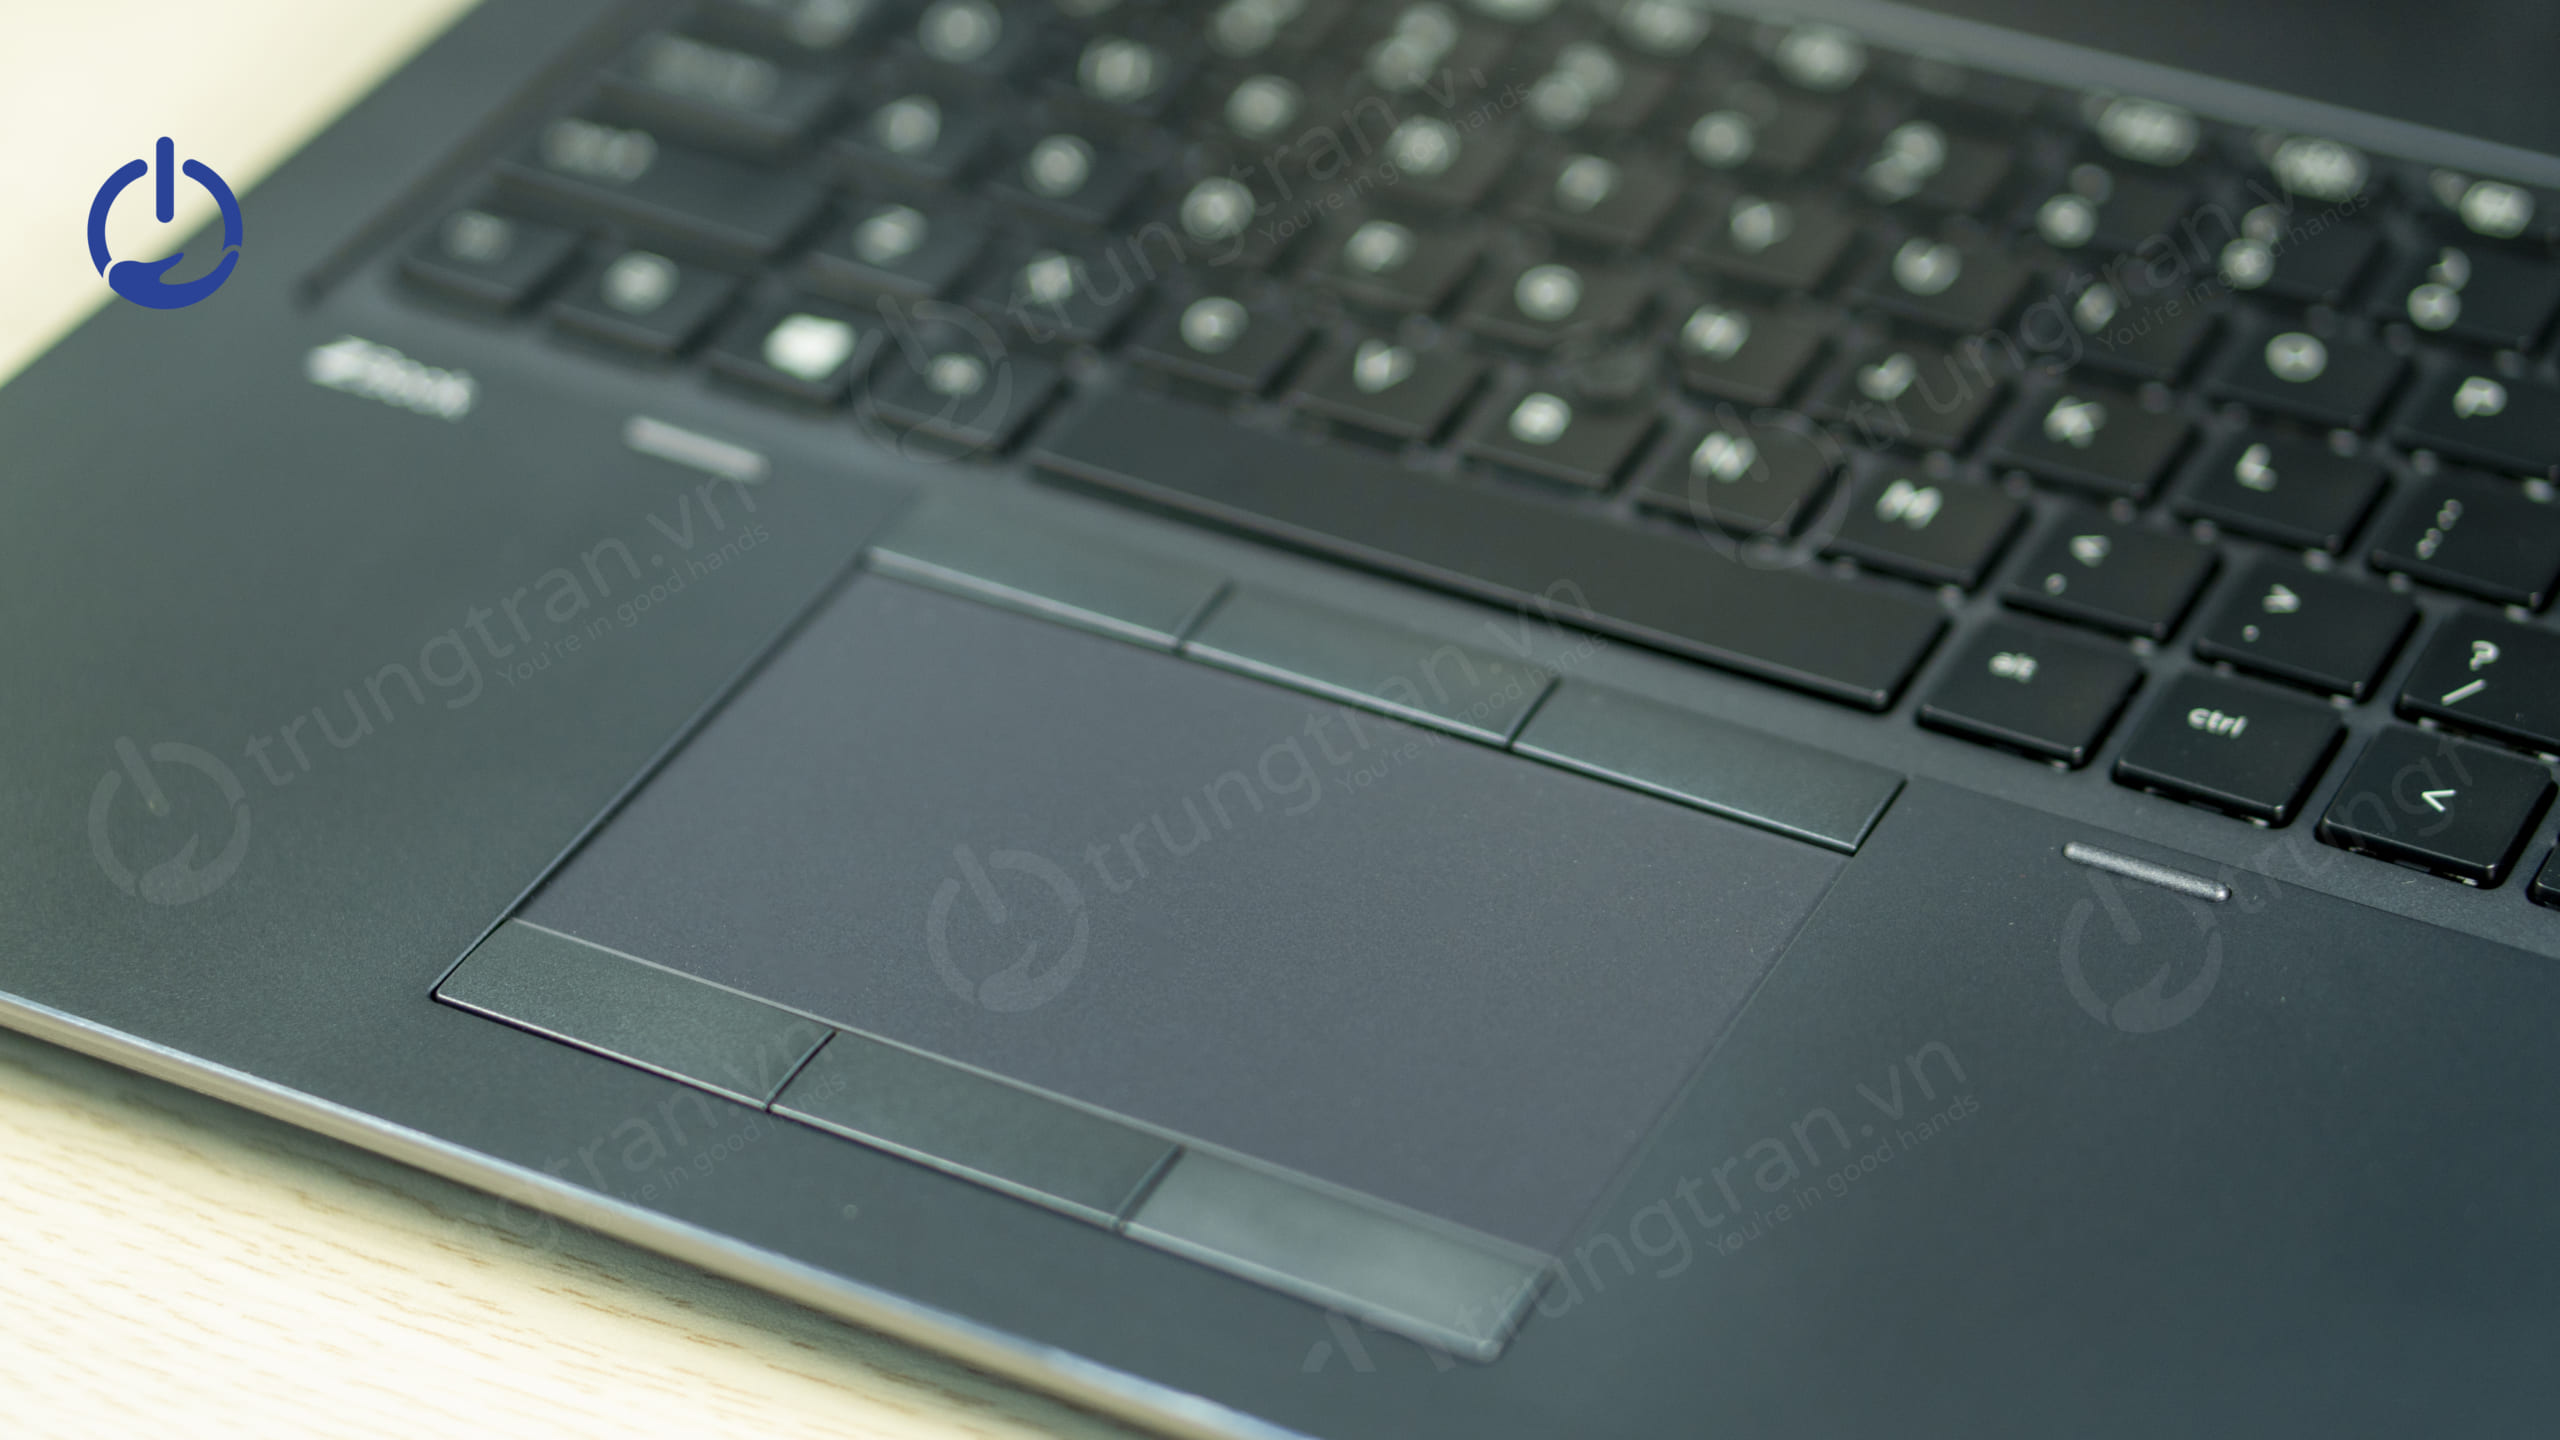 touchpad hp zbook g3